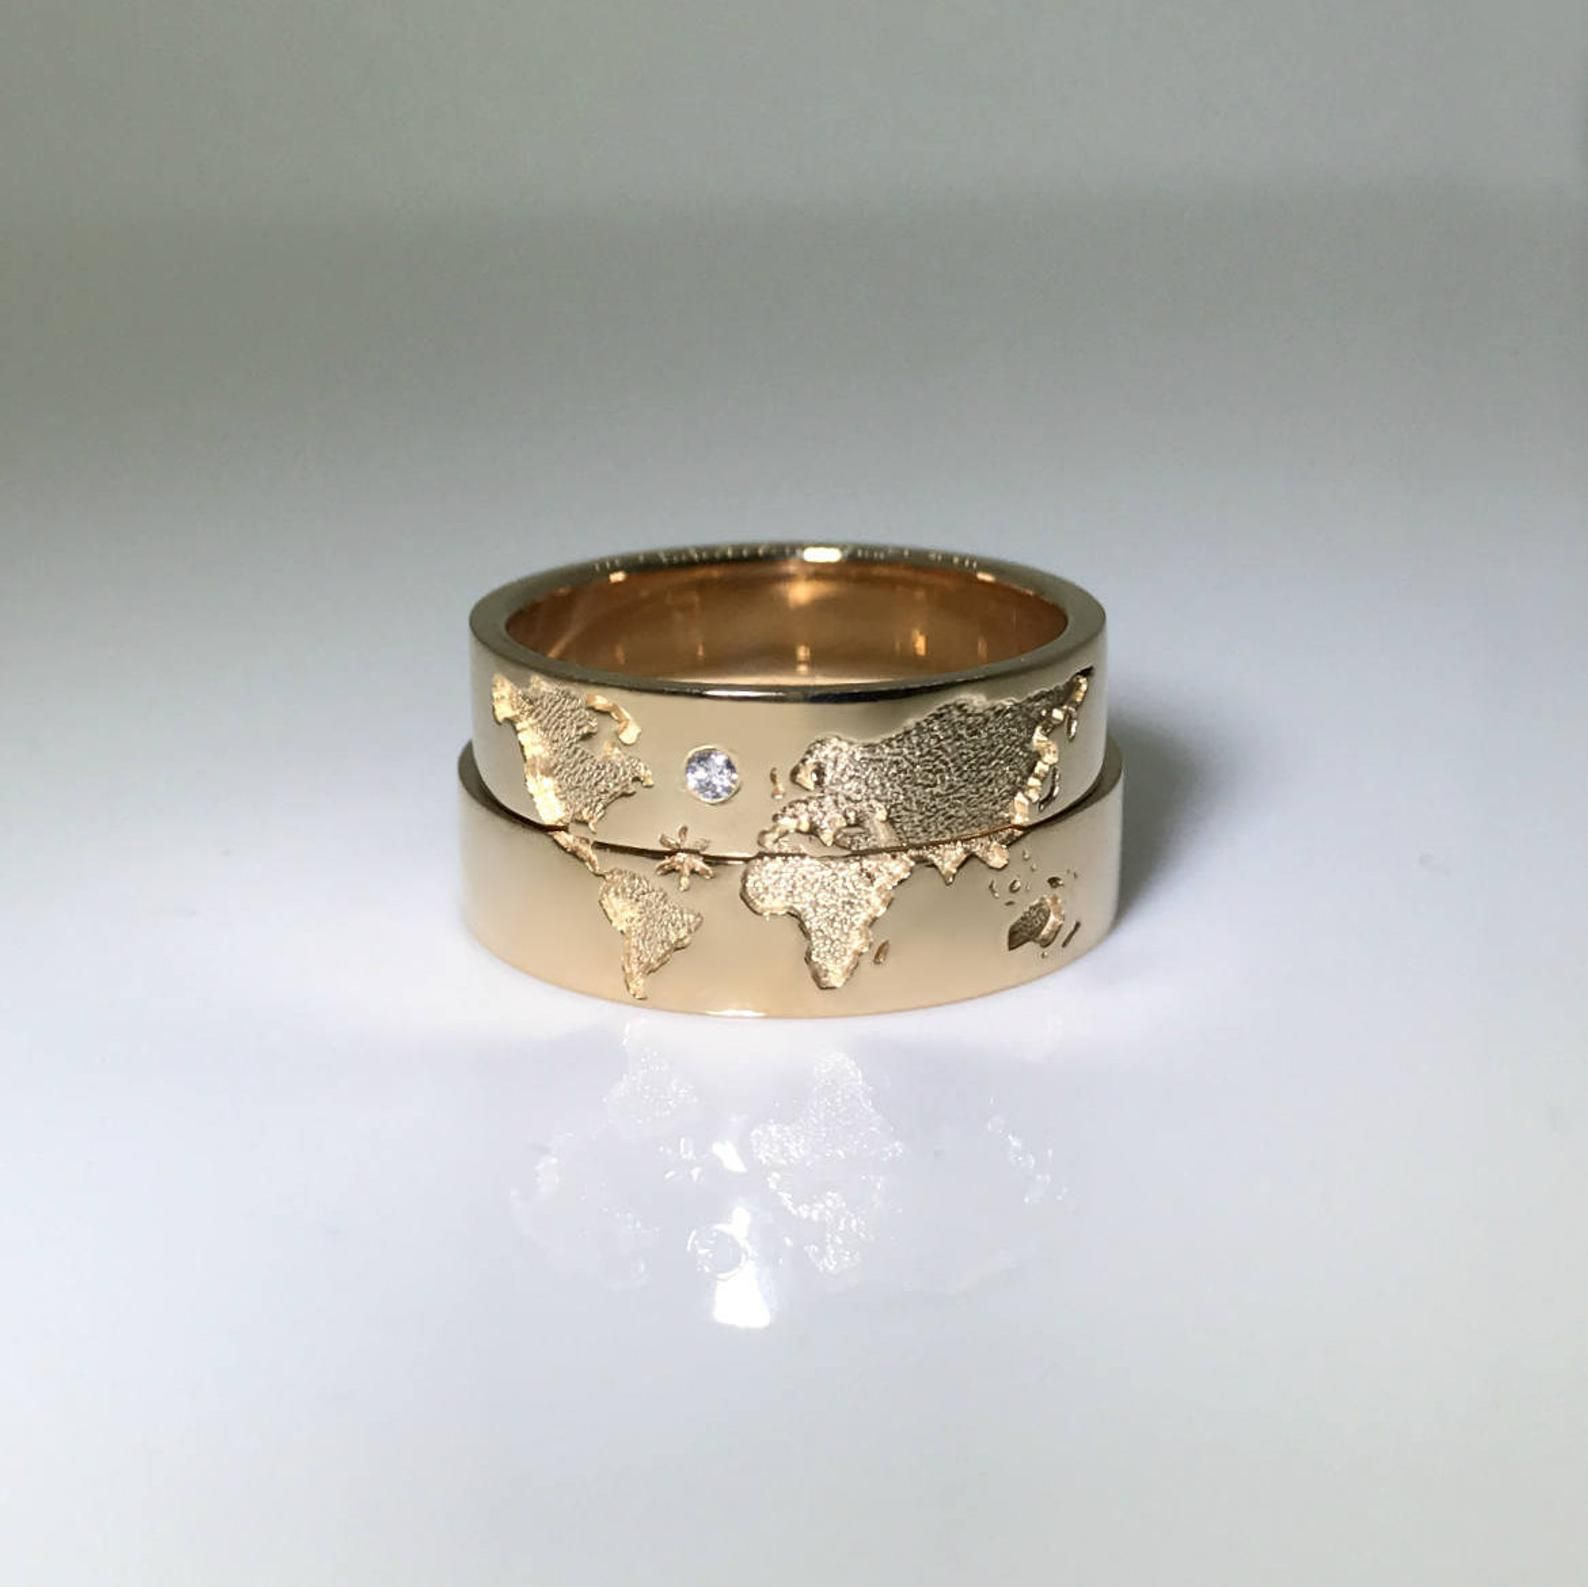 14k Gold Wedding Bands Set With World Map Travelers Wedding Etsy In 2020 Gold Wedding Band Sets Wedding Rings Vintage Wedding Rings Unique